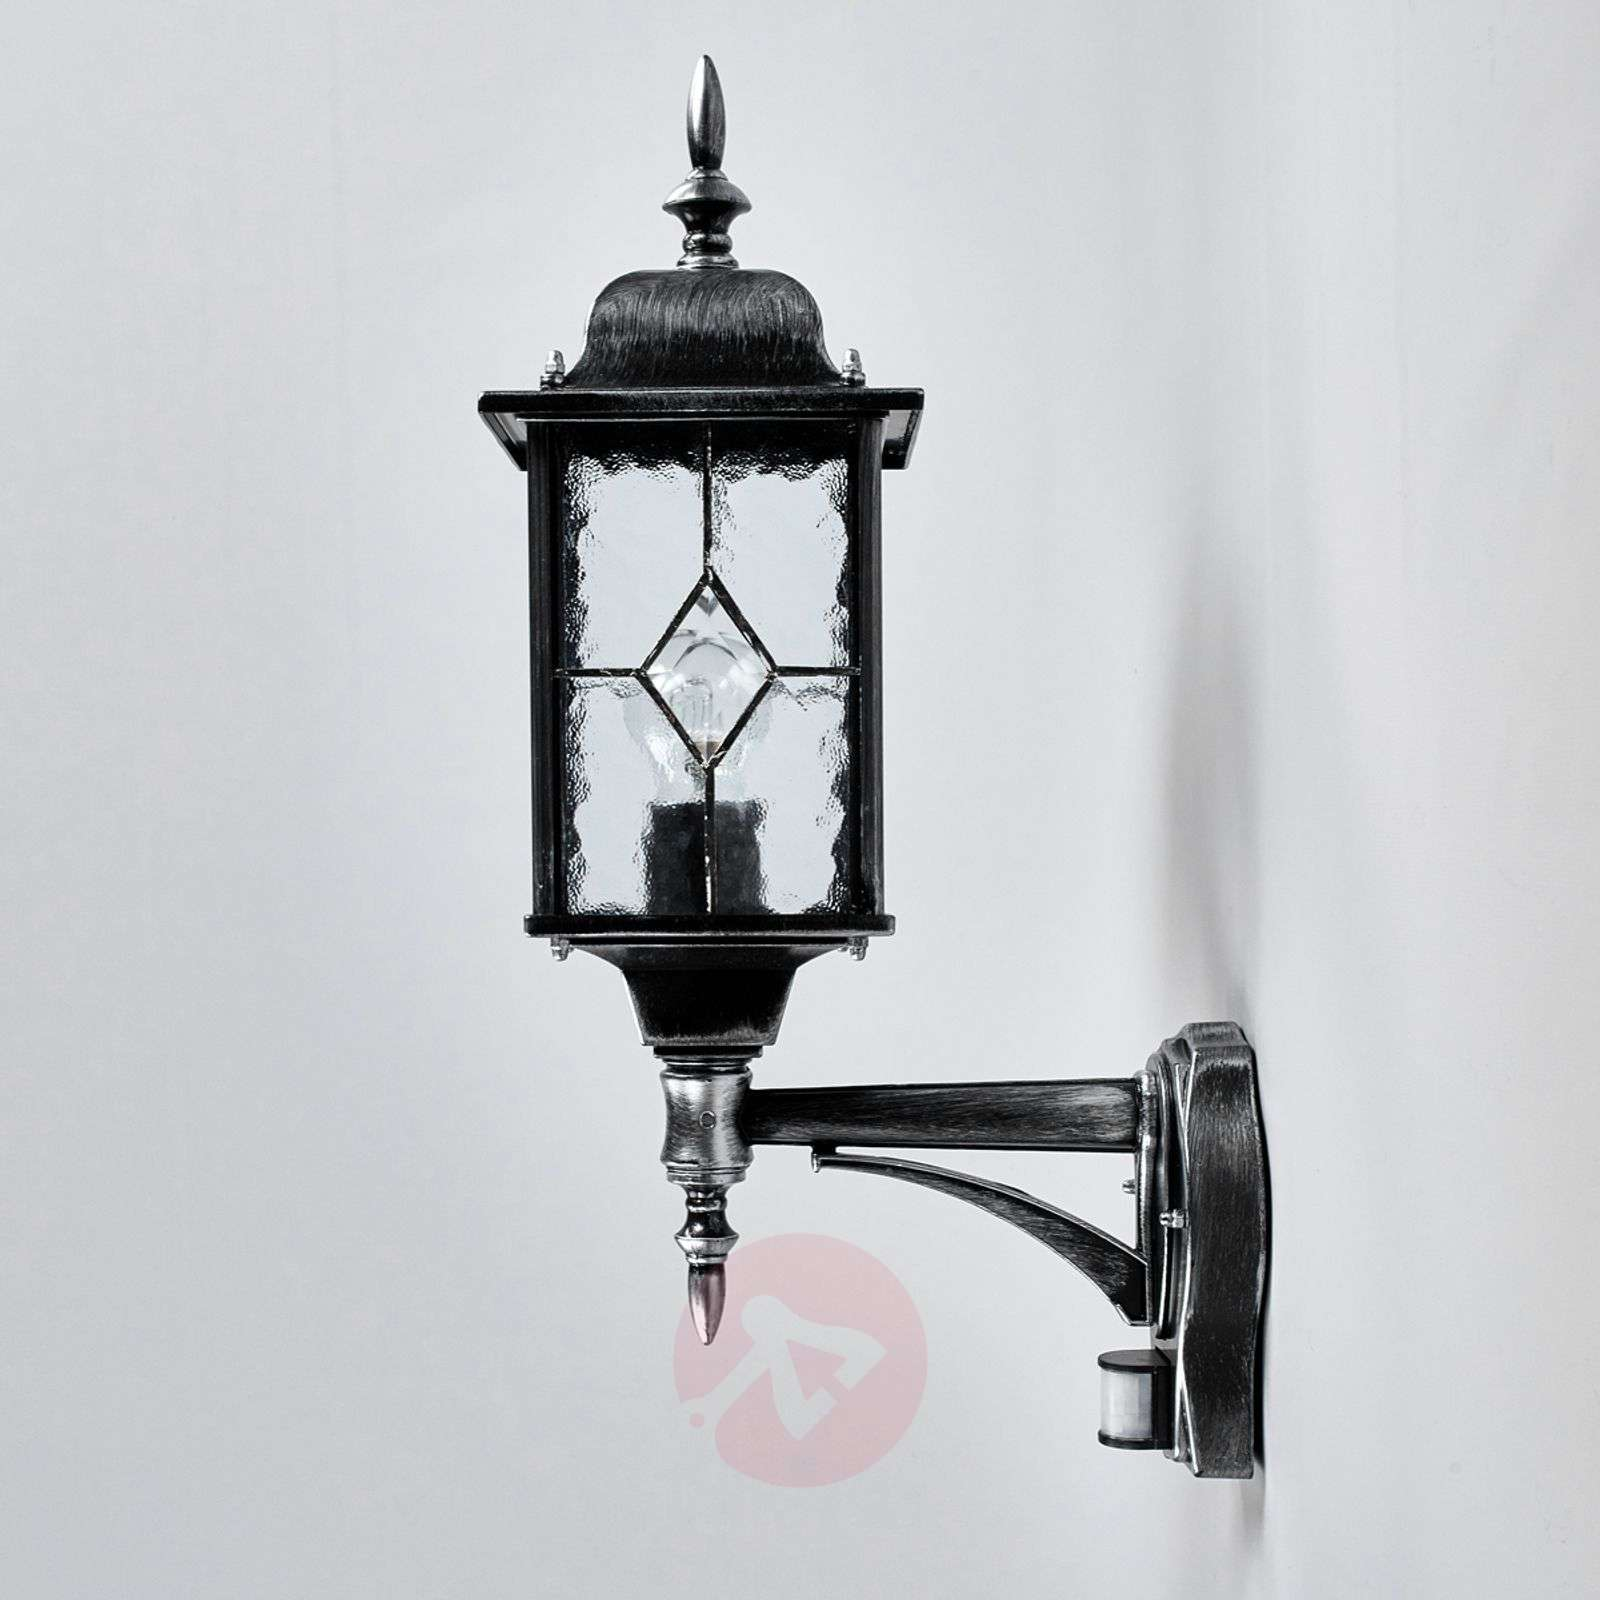 Wexford Outside Wall Light Robust-3048207-02